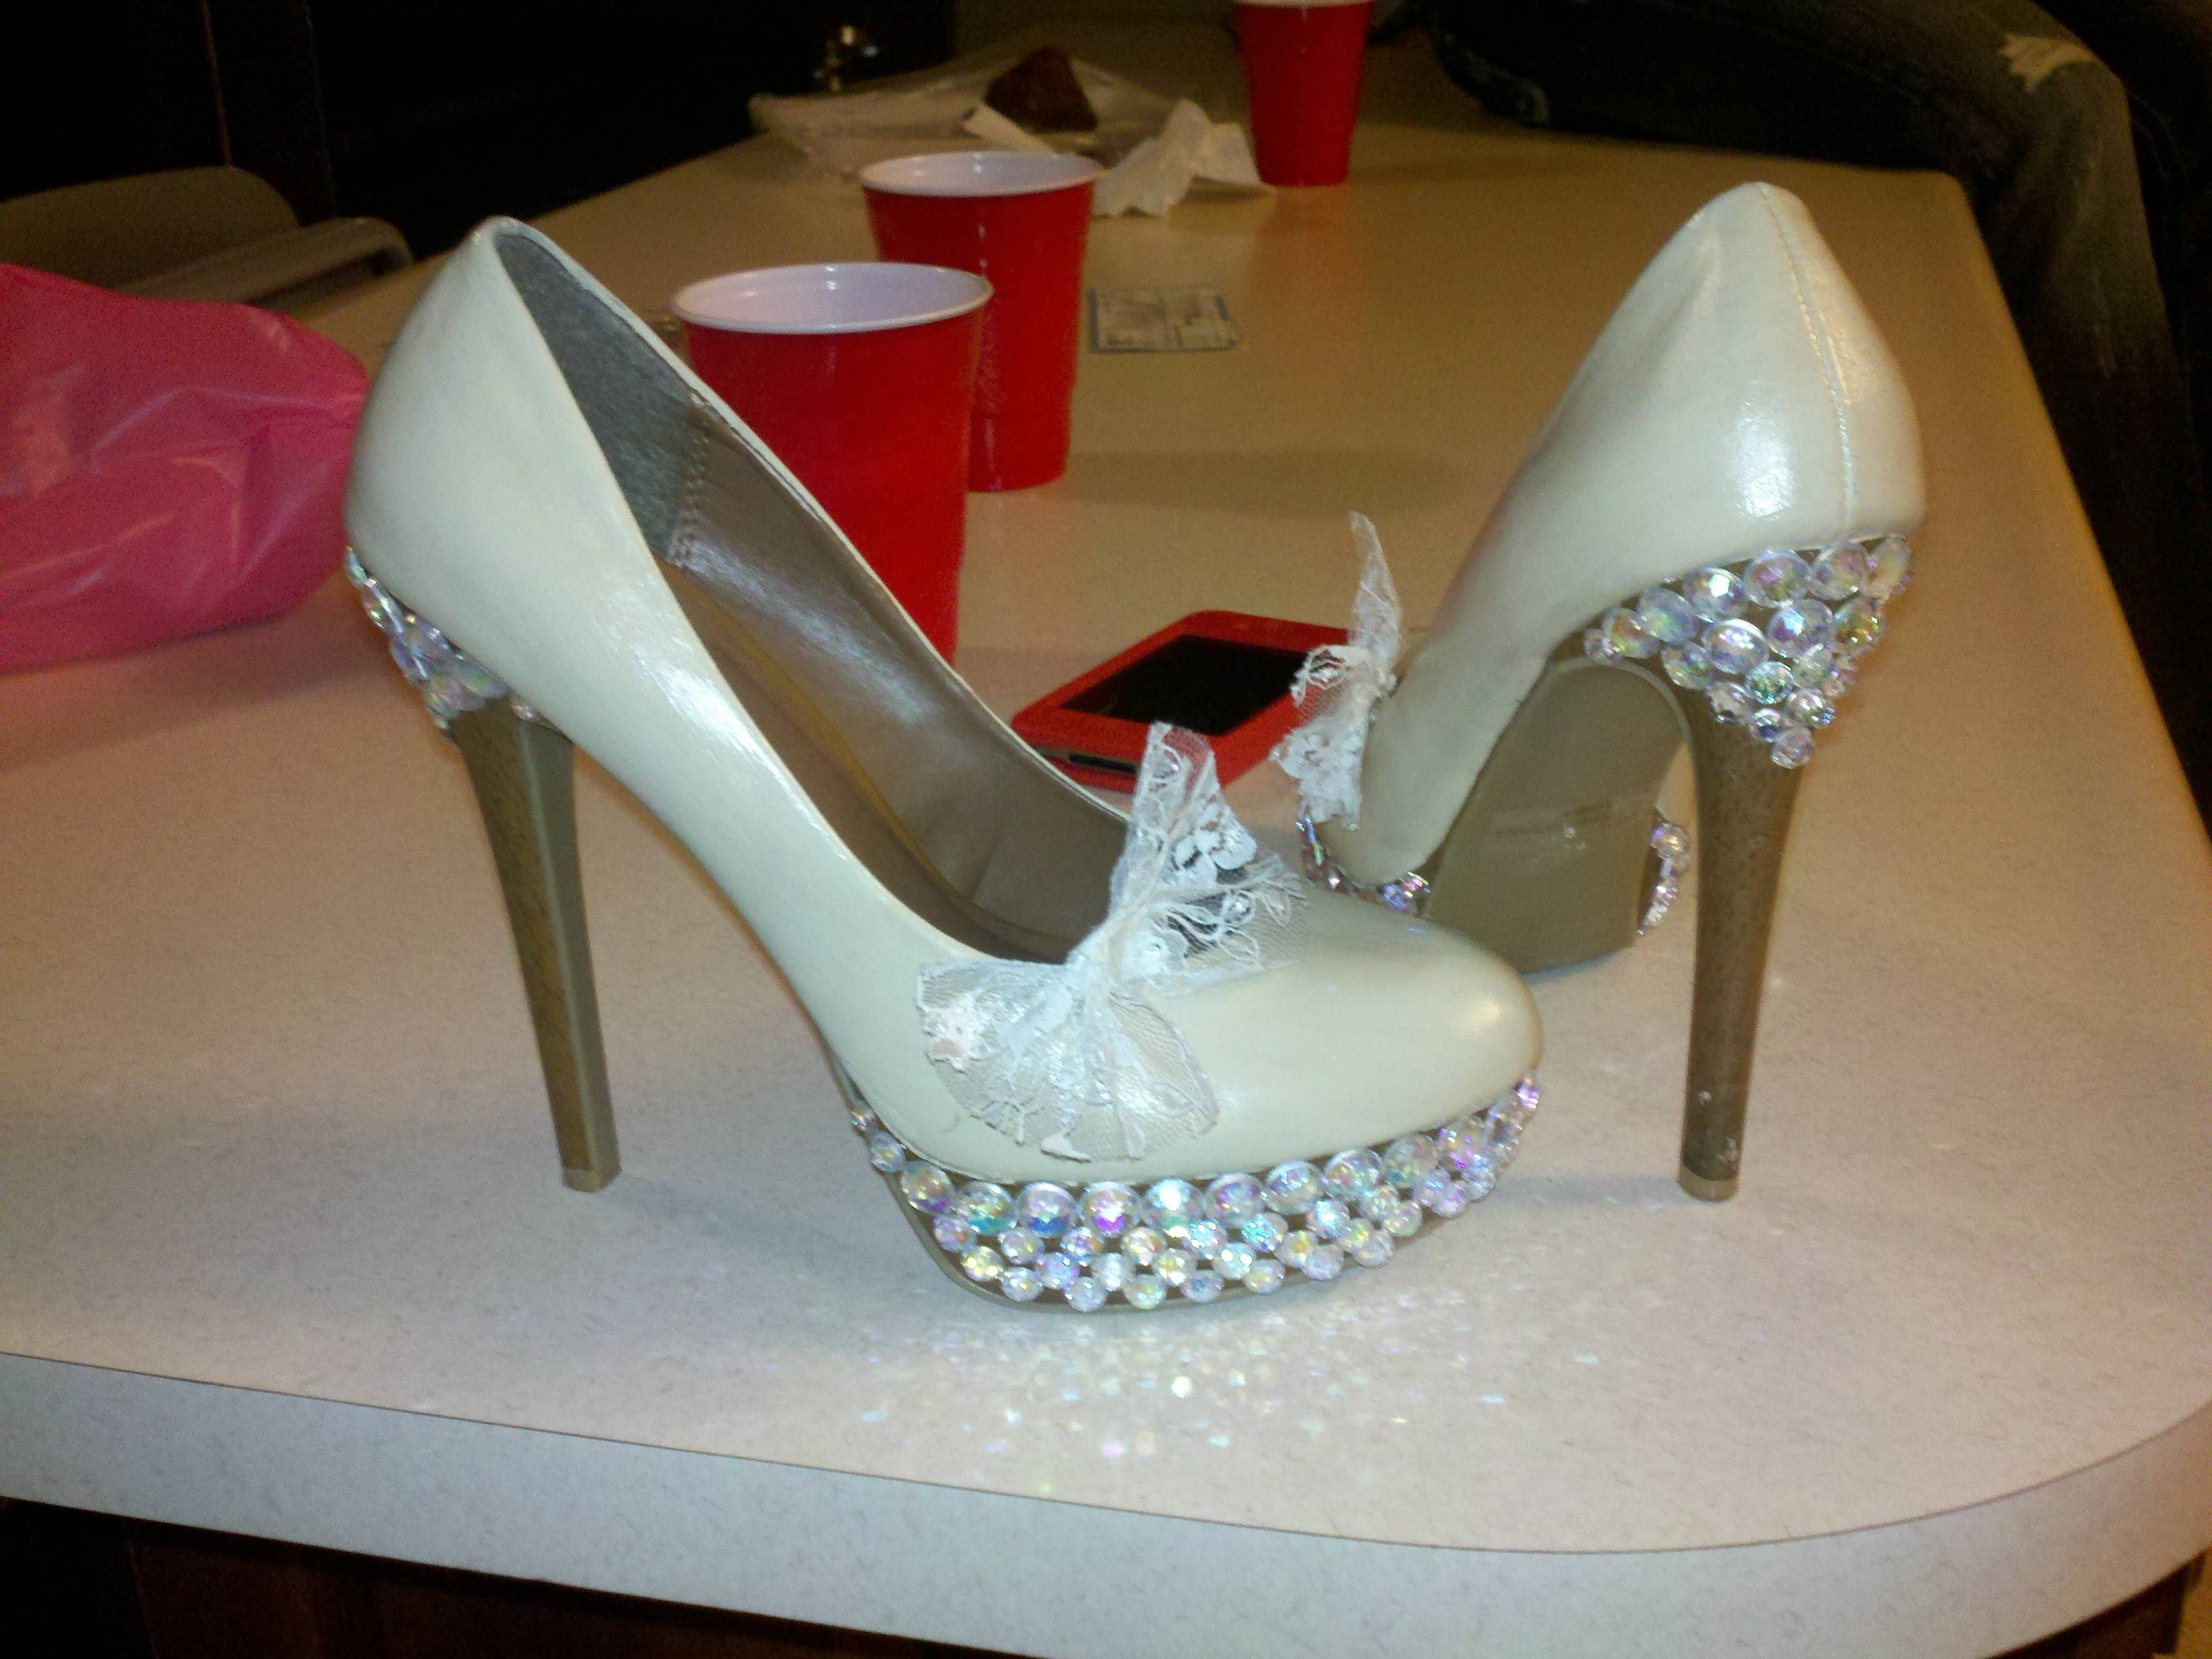 Painted shoes. Seal with modge podge or acrylic sealer. Add rhinestones  with E6000 craft glue 58724587c63a